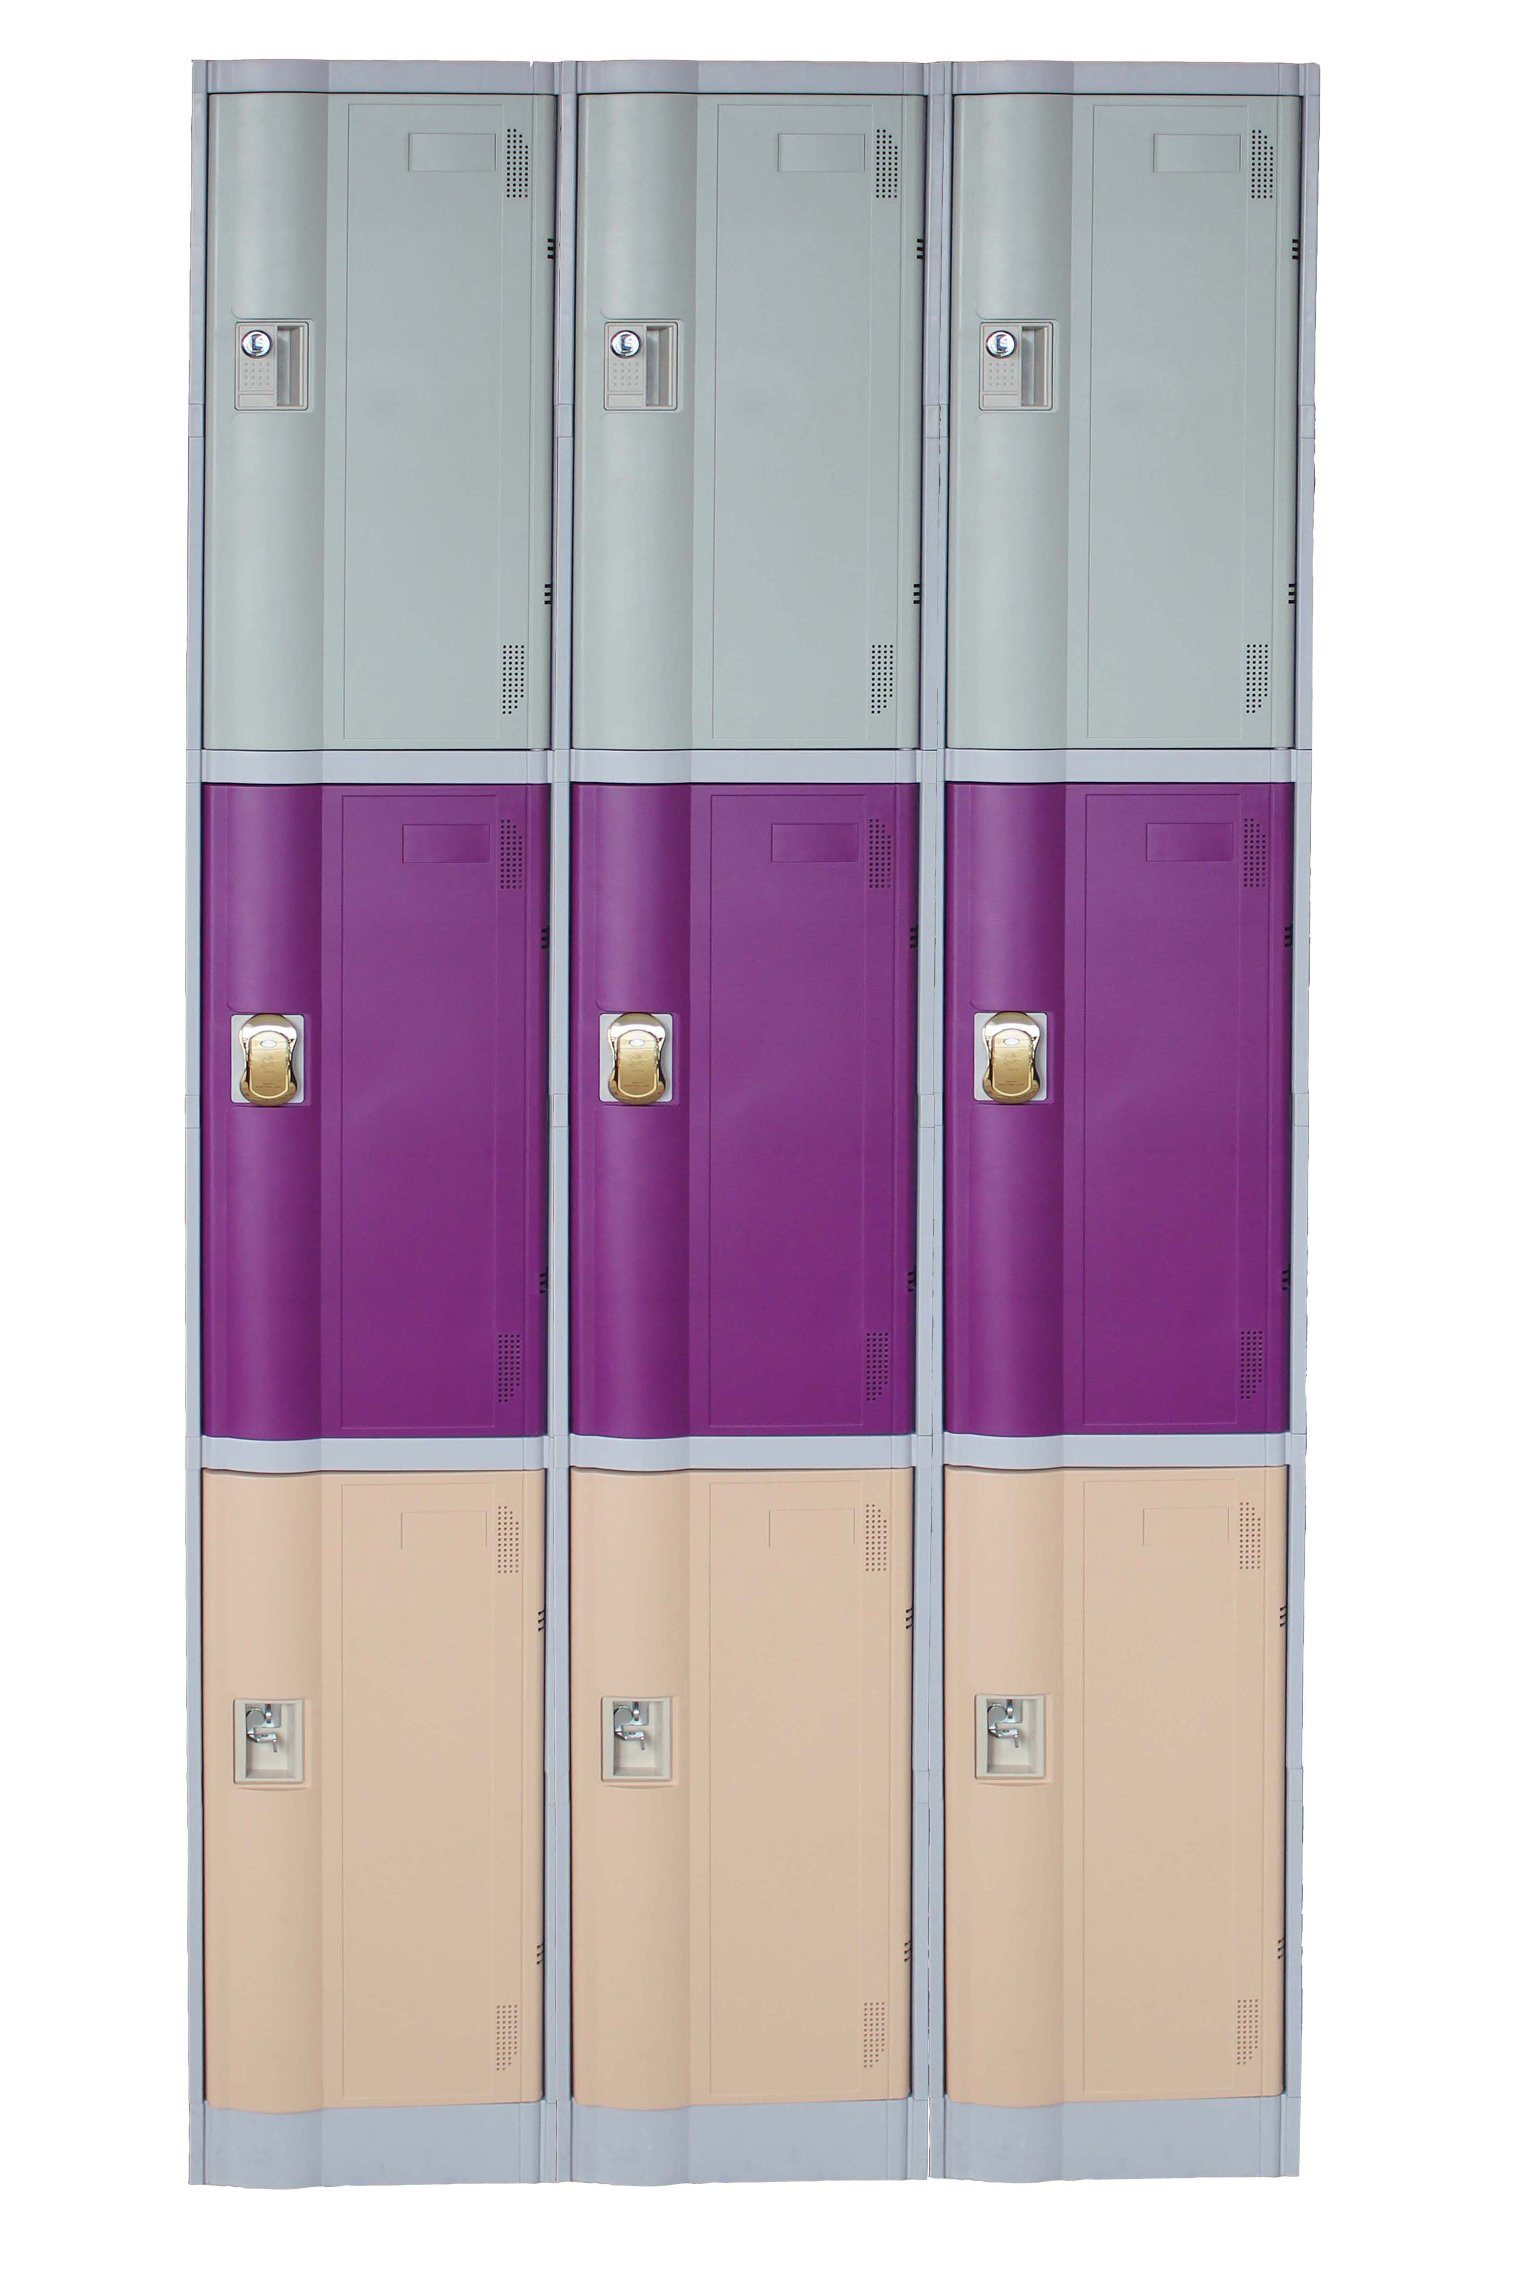 ABS Plastic Locker Cabinets for Fitness Center and Gym